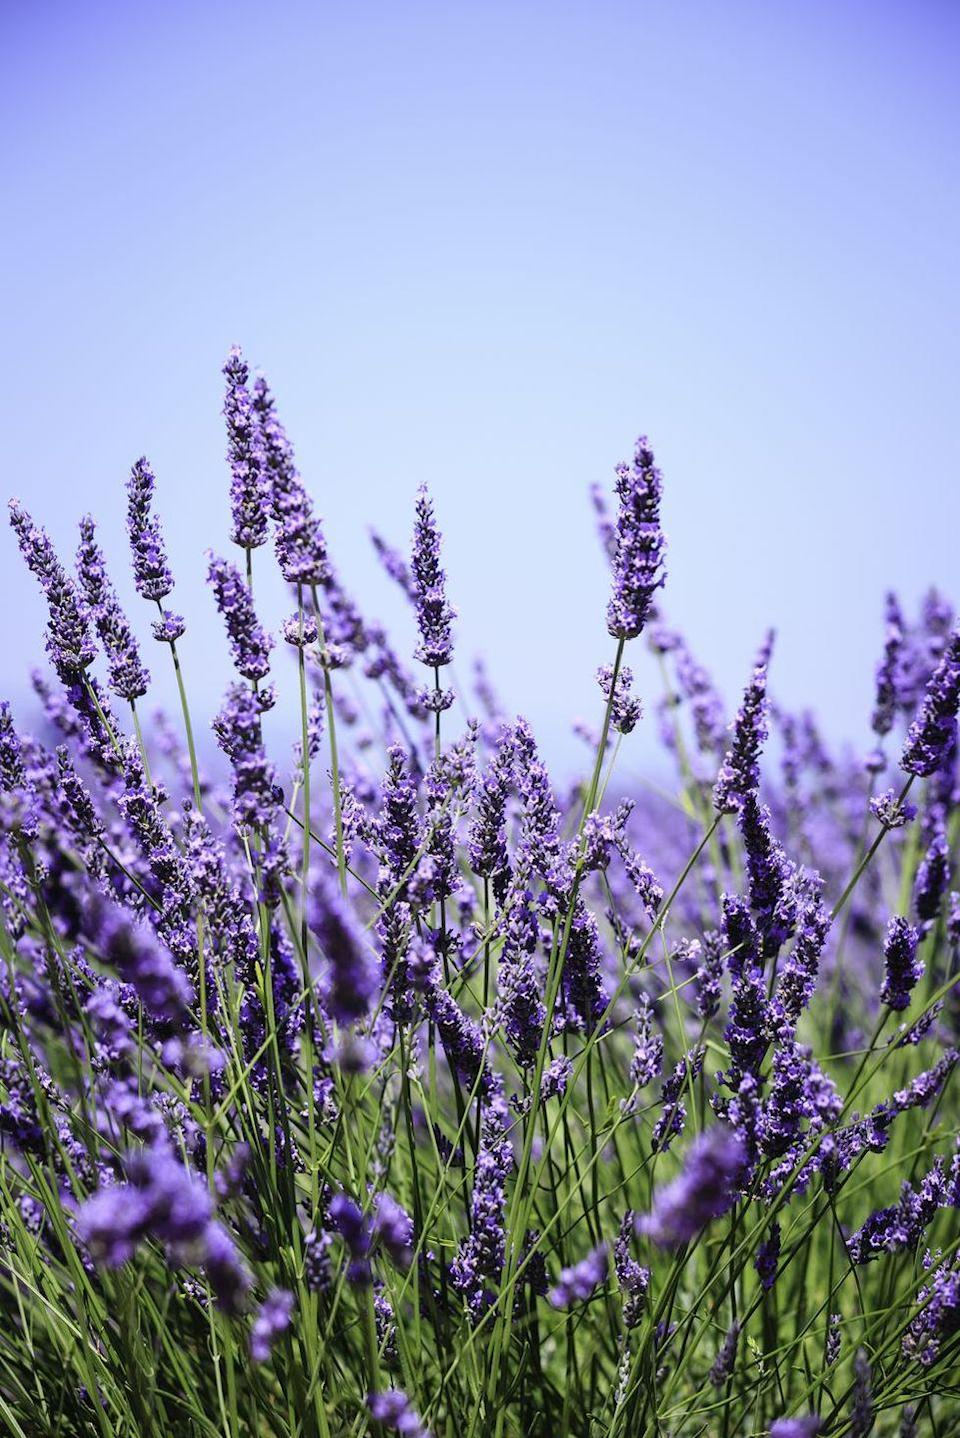 """<p>From their wonderful scent to their beautiful purple hue, a bouquet of lavender is a message of devotion. It also has calming aromatherapy properties, so a bouquet of lavender may make an excellent gift for a student or anyone in your life who needs some relaxation.</p><p><strong>RELATED: </strong><a href=""""https://www.goodhousekeeping.com/home/gardening/a20705663/how-to-grow-lavender/"""" rel=""""nofollow noopener"""" target=""""_blank"""" data-ylk=""""slk:How to Grow Lavender Anywhere — Even Indoors"""" class=""""link rapid-noclick-resp"""">How to Grow Lavender Anywhere — Even Indoors </a></p>"""